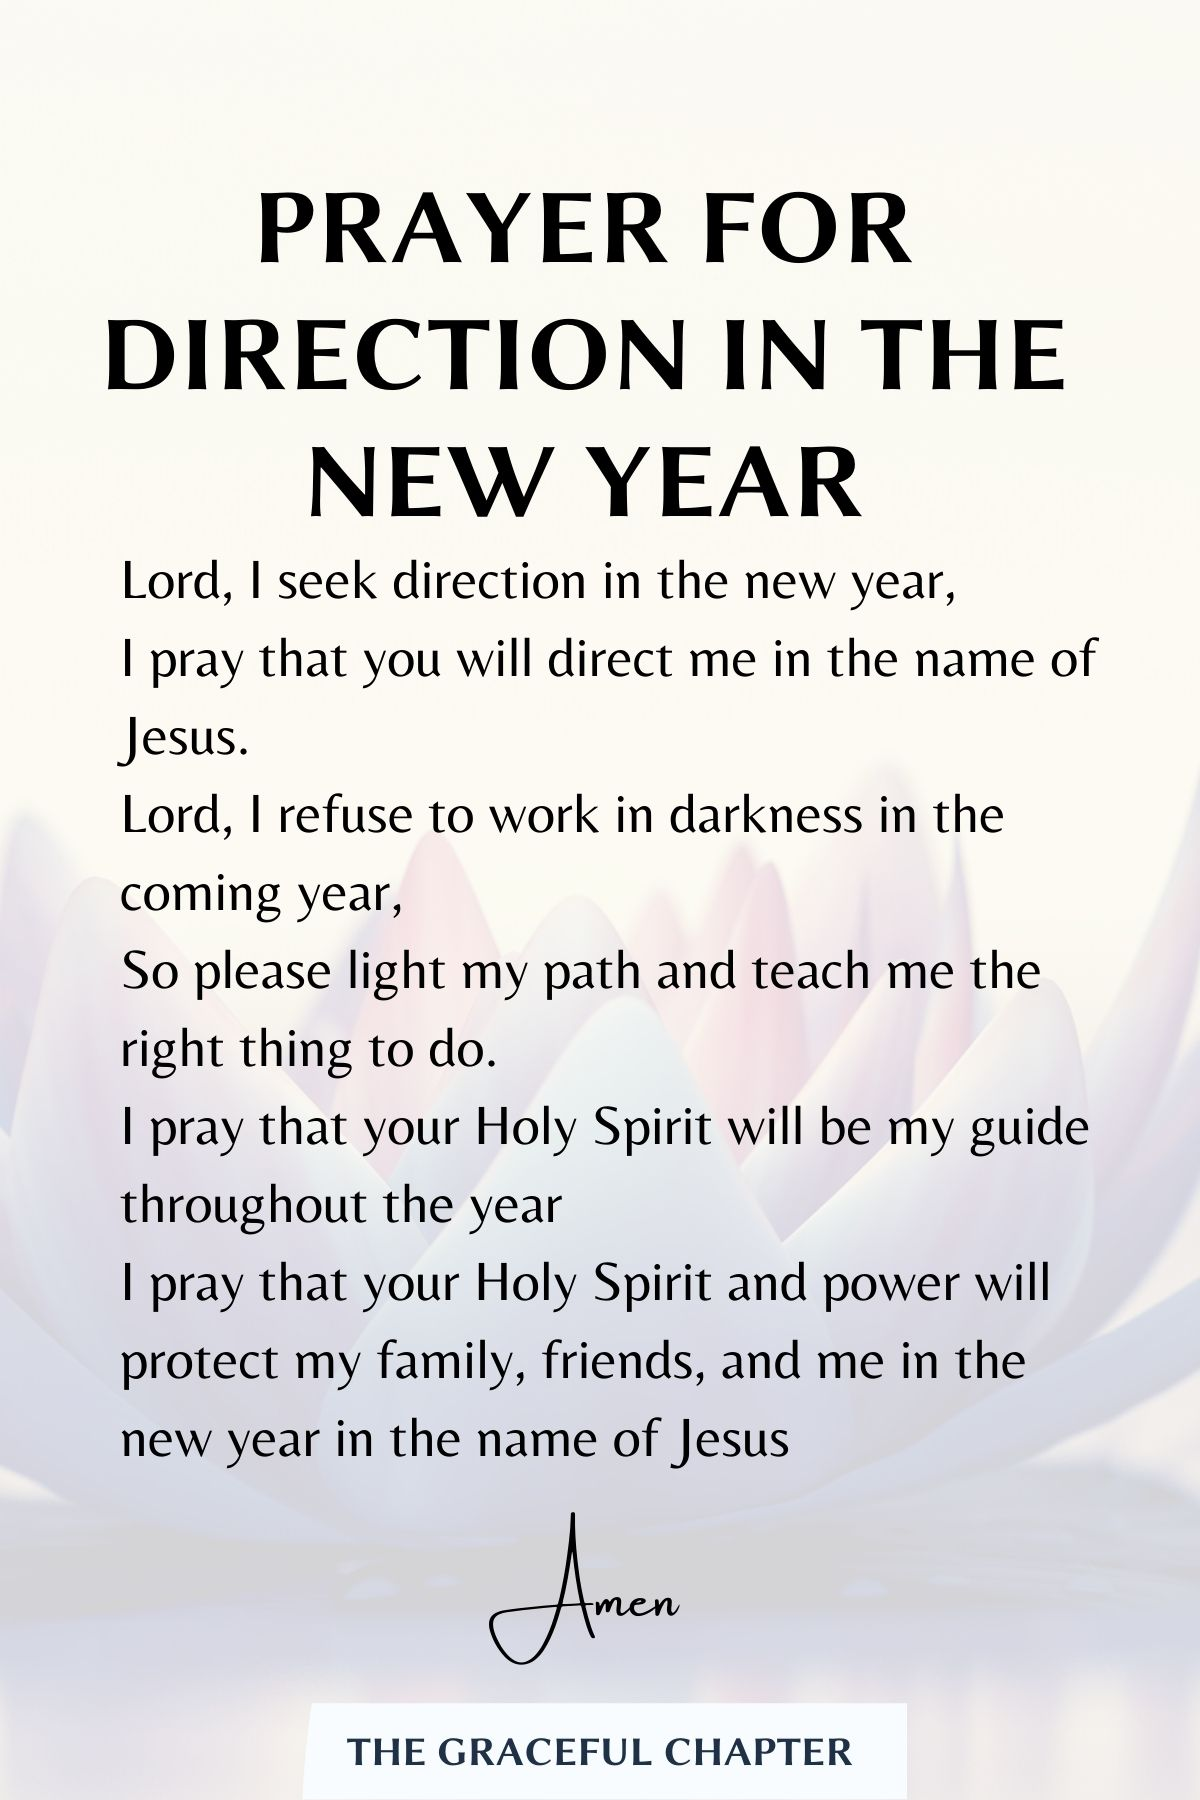 Prayer for direction in the new year